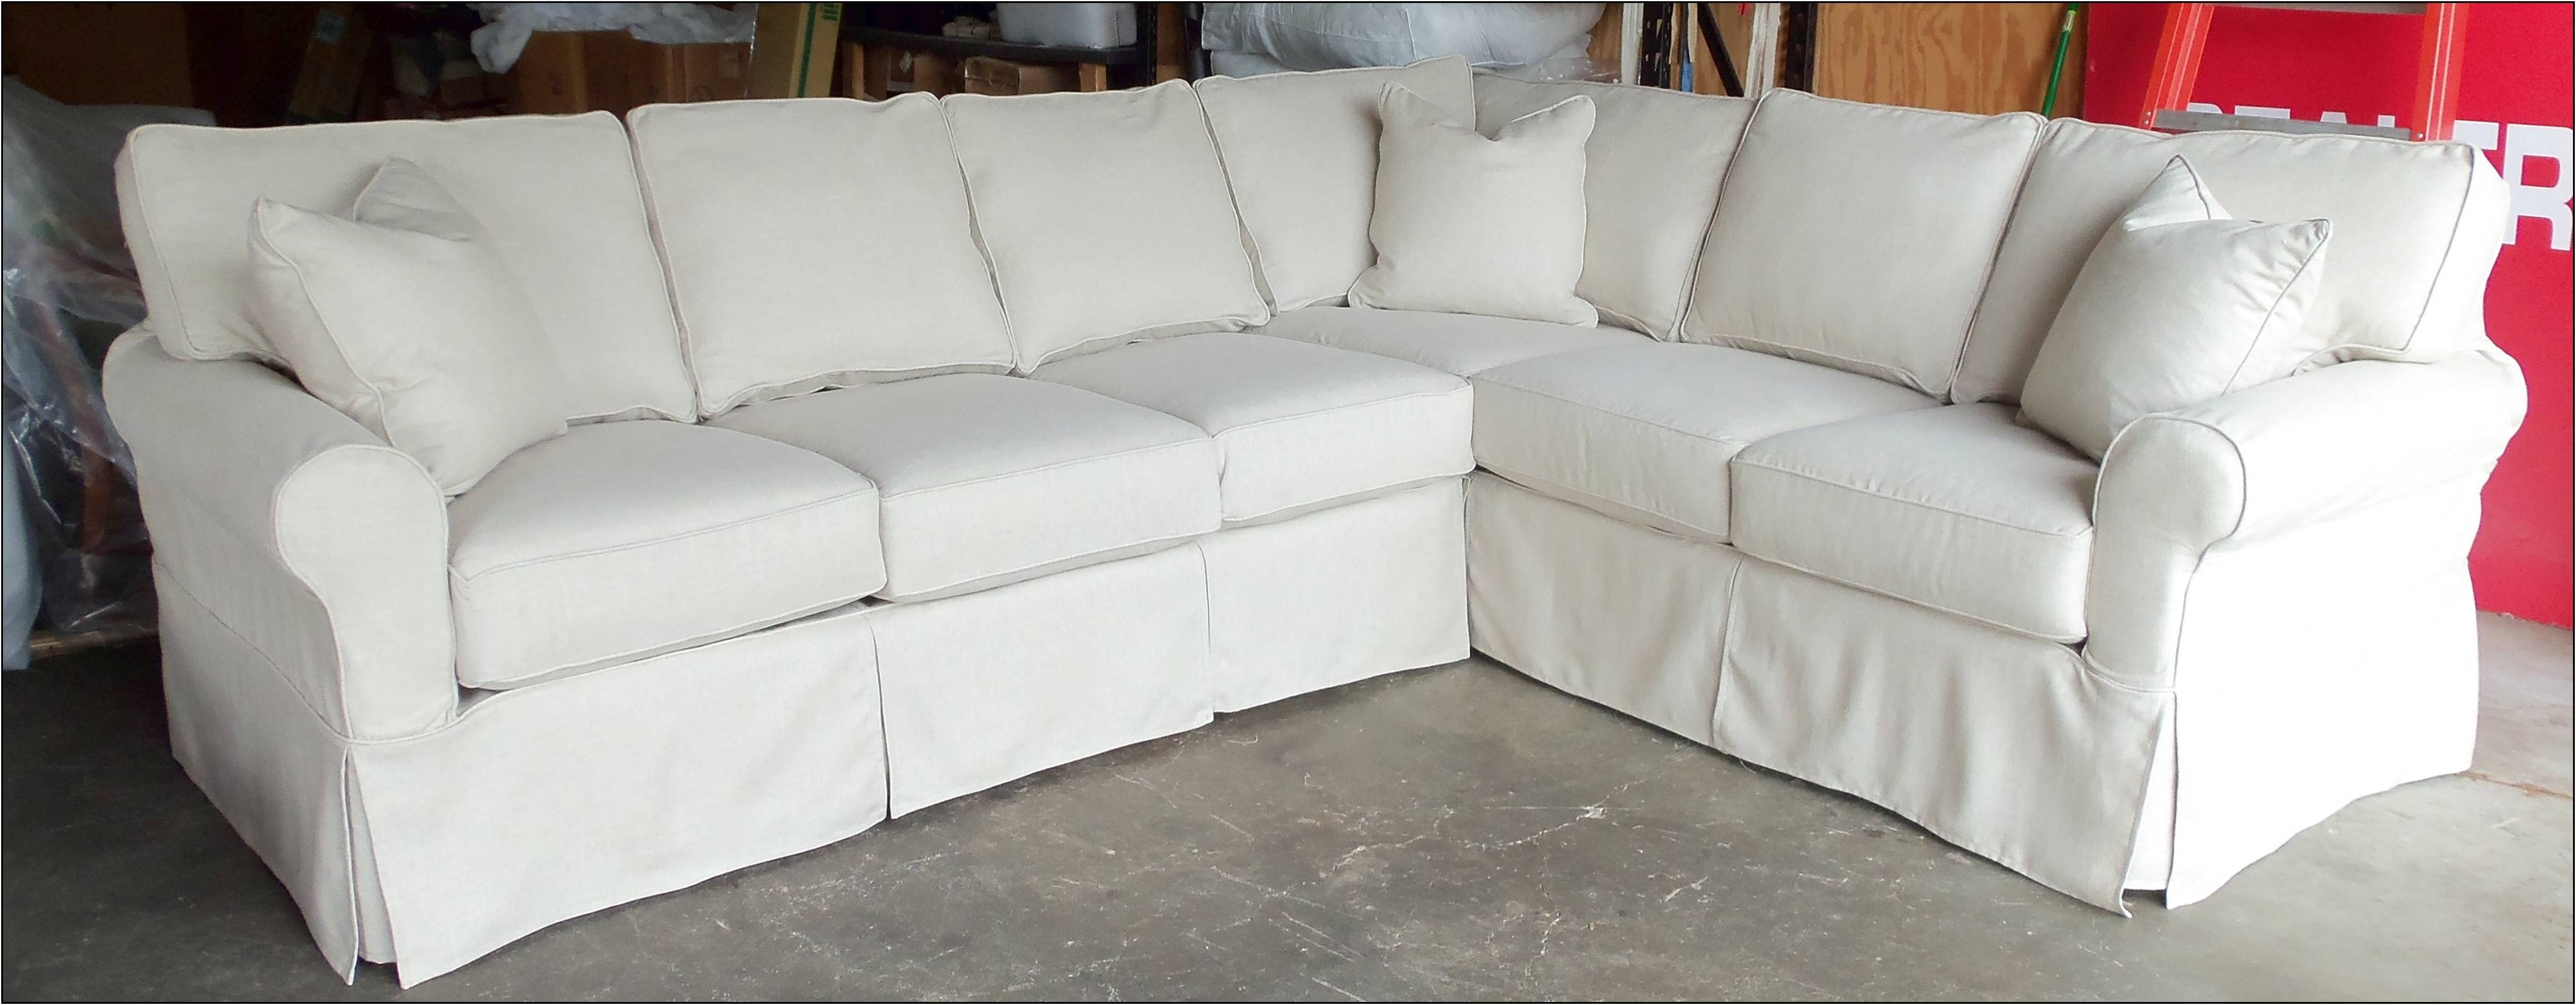 Furniture: Give Your Furniture Makeover With Sofa Recliner Covers within Covers For Sofas (Image 14 of 30)